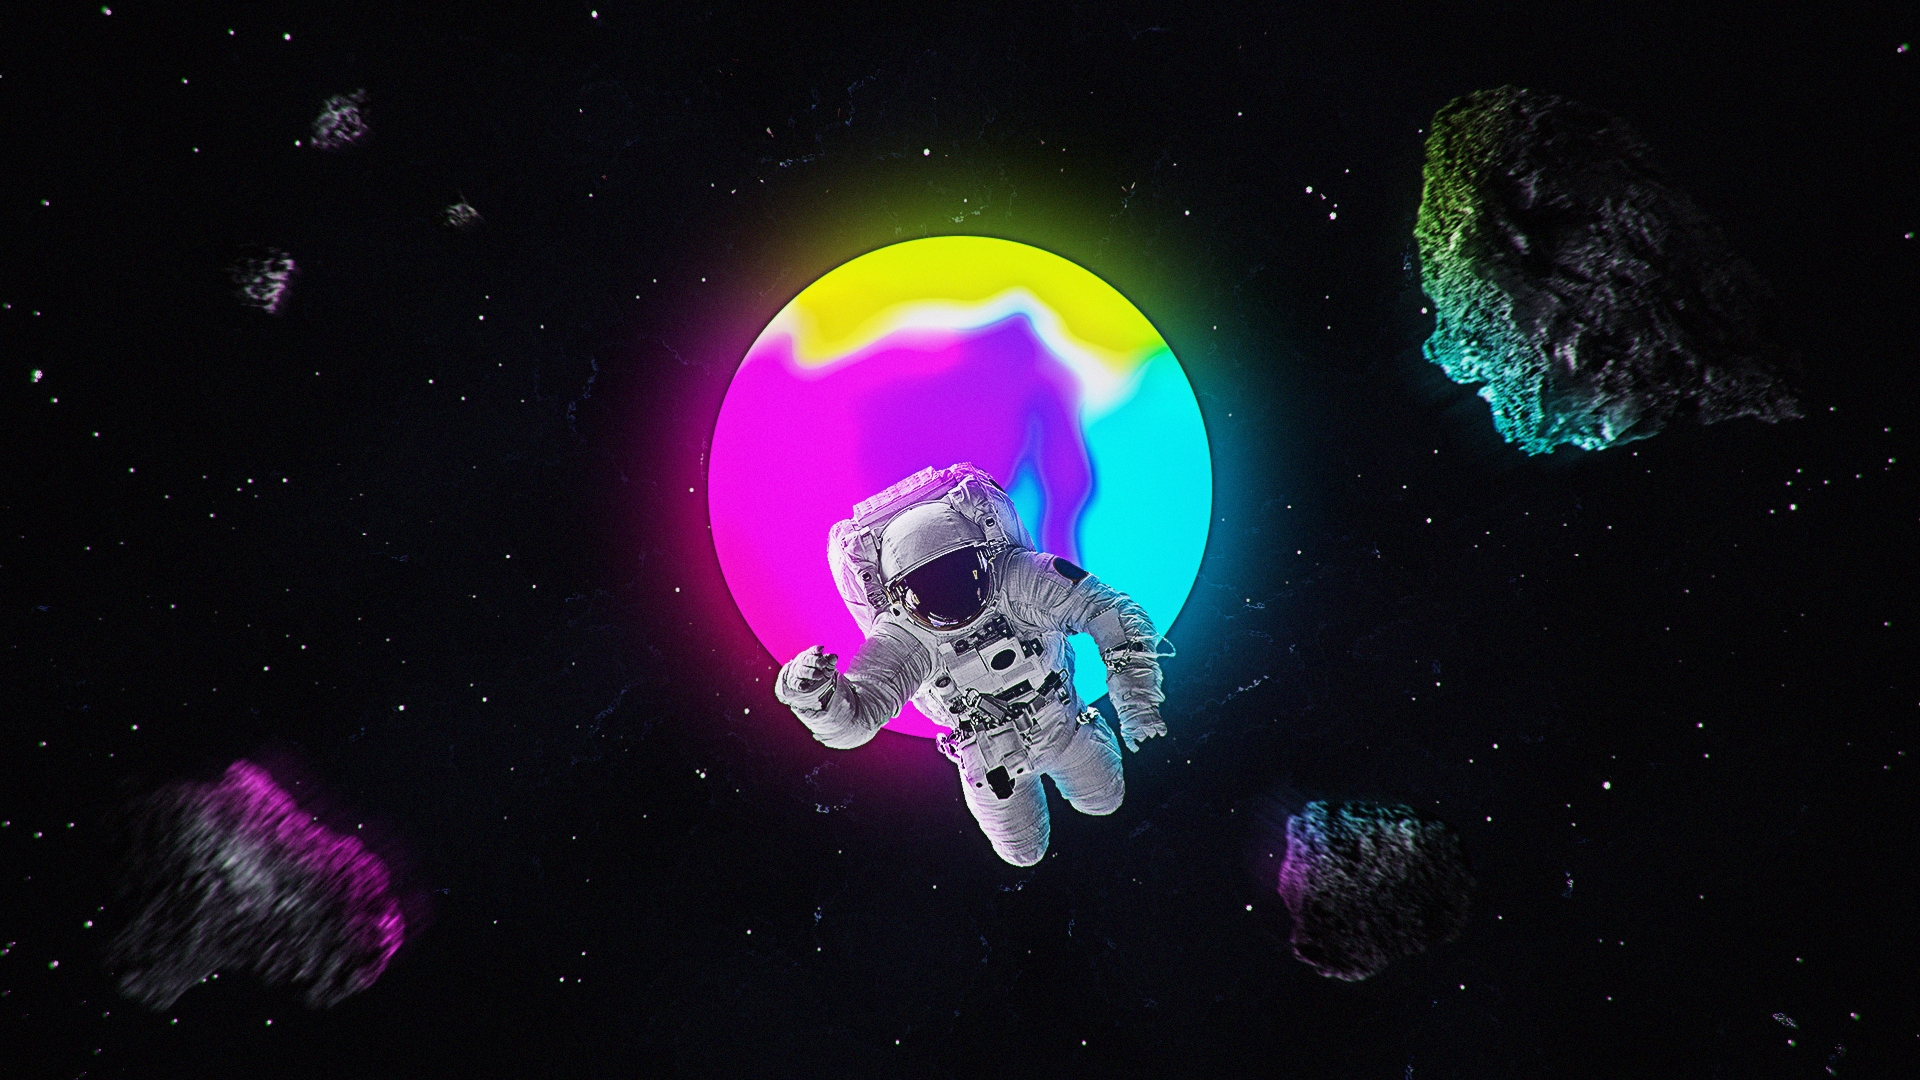 Cute Hipster Iphone Wallpaper Astronaut Wallpapers Hd Wallpapers Id 27336